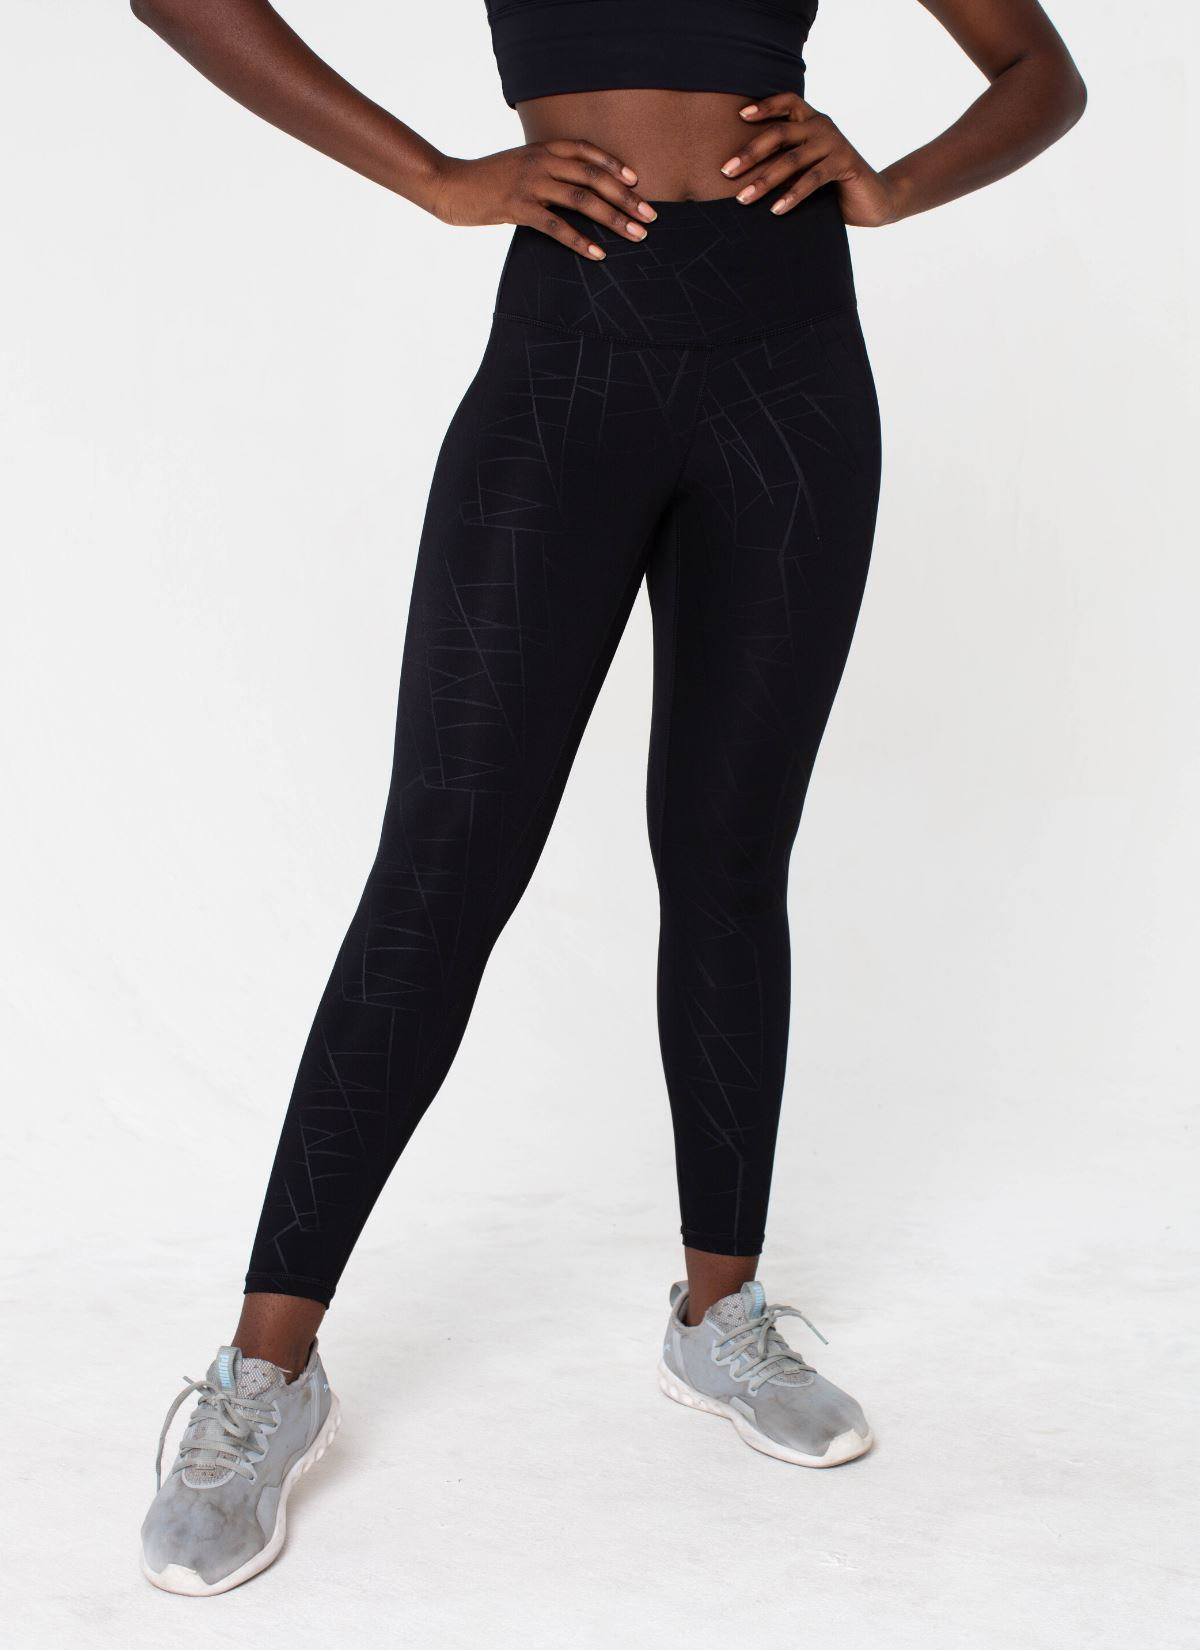 Diamond Seamless Black Leggings